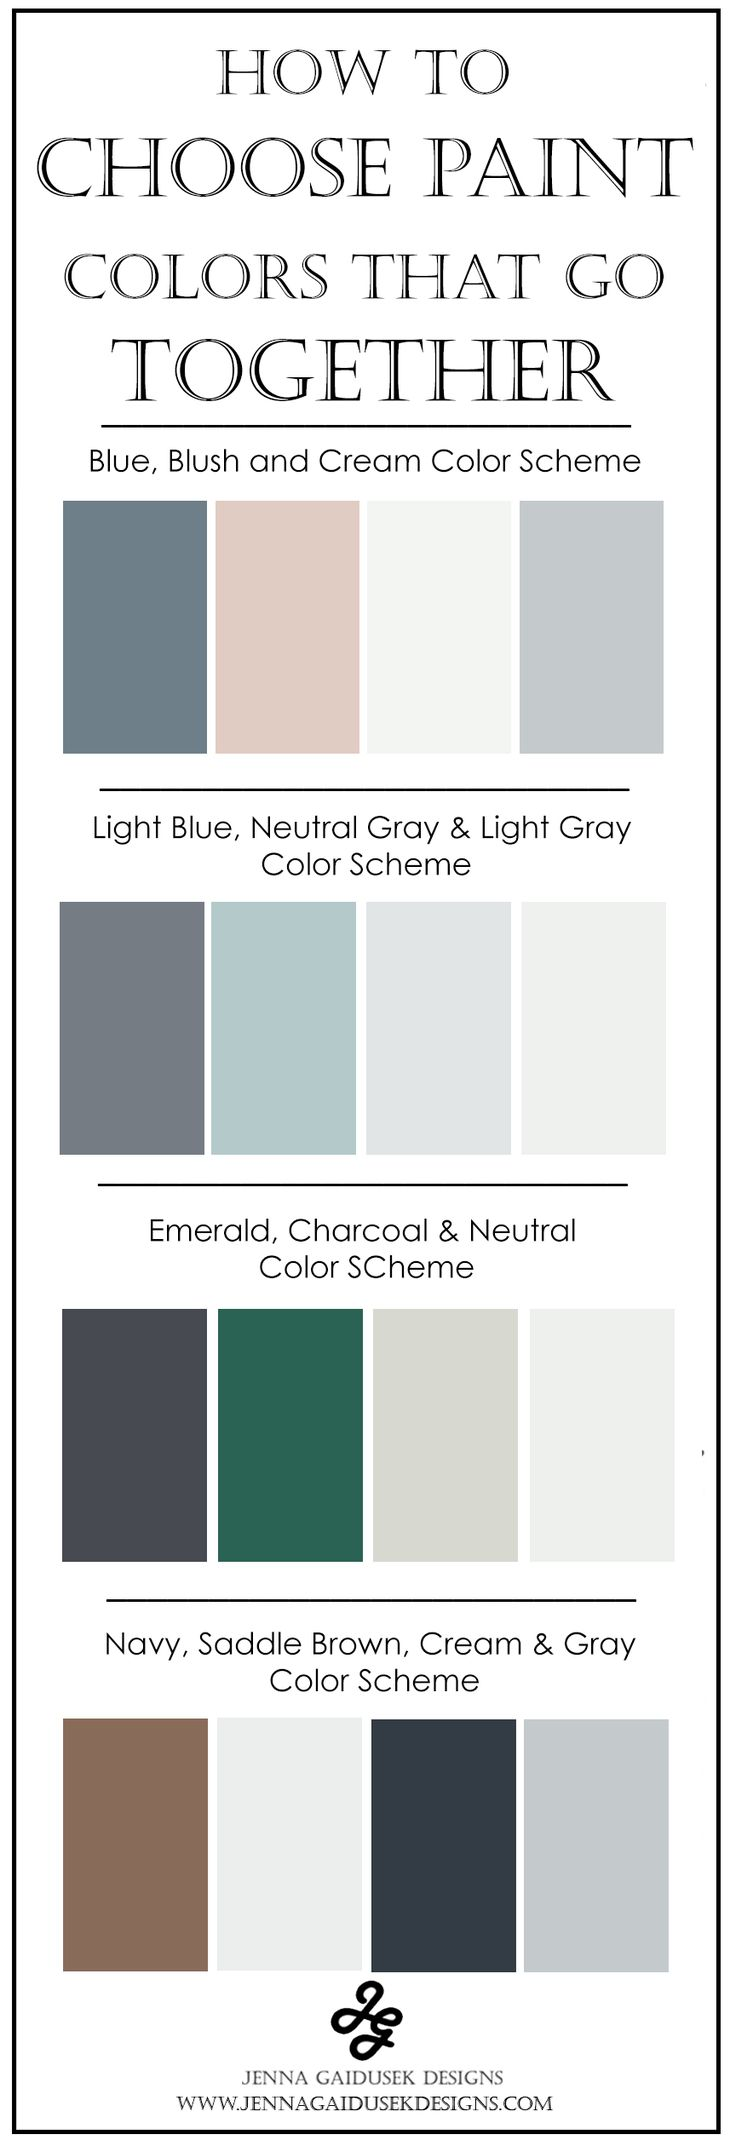 how to choose paint colors that go together paint colors